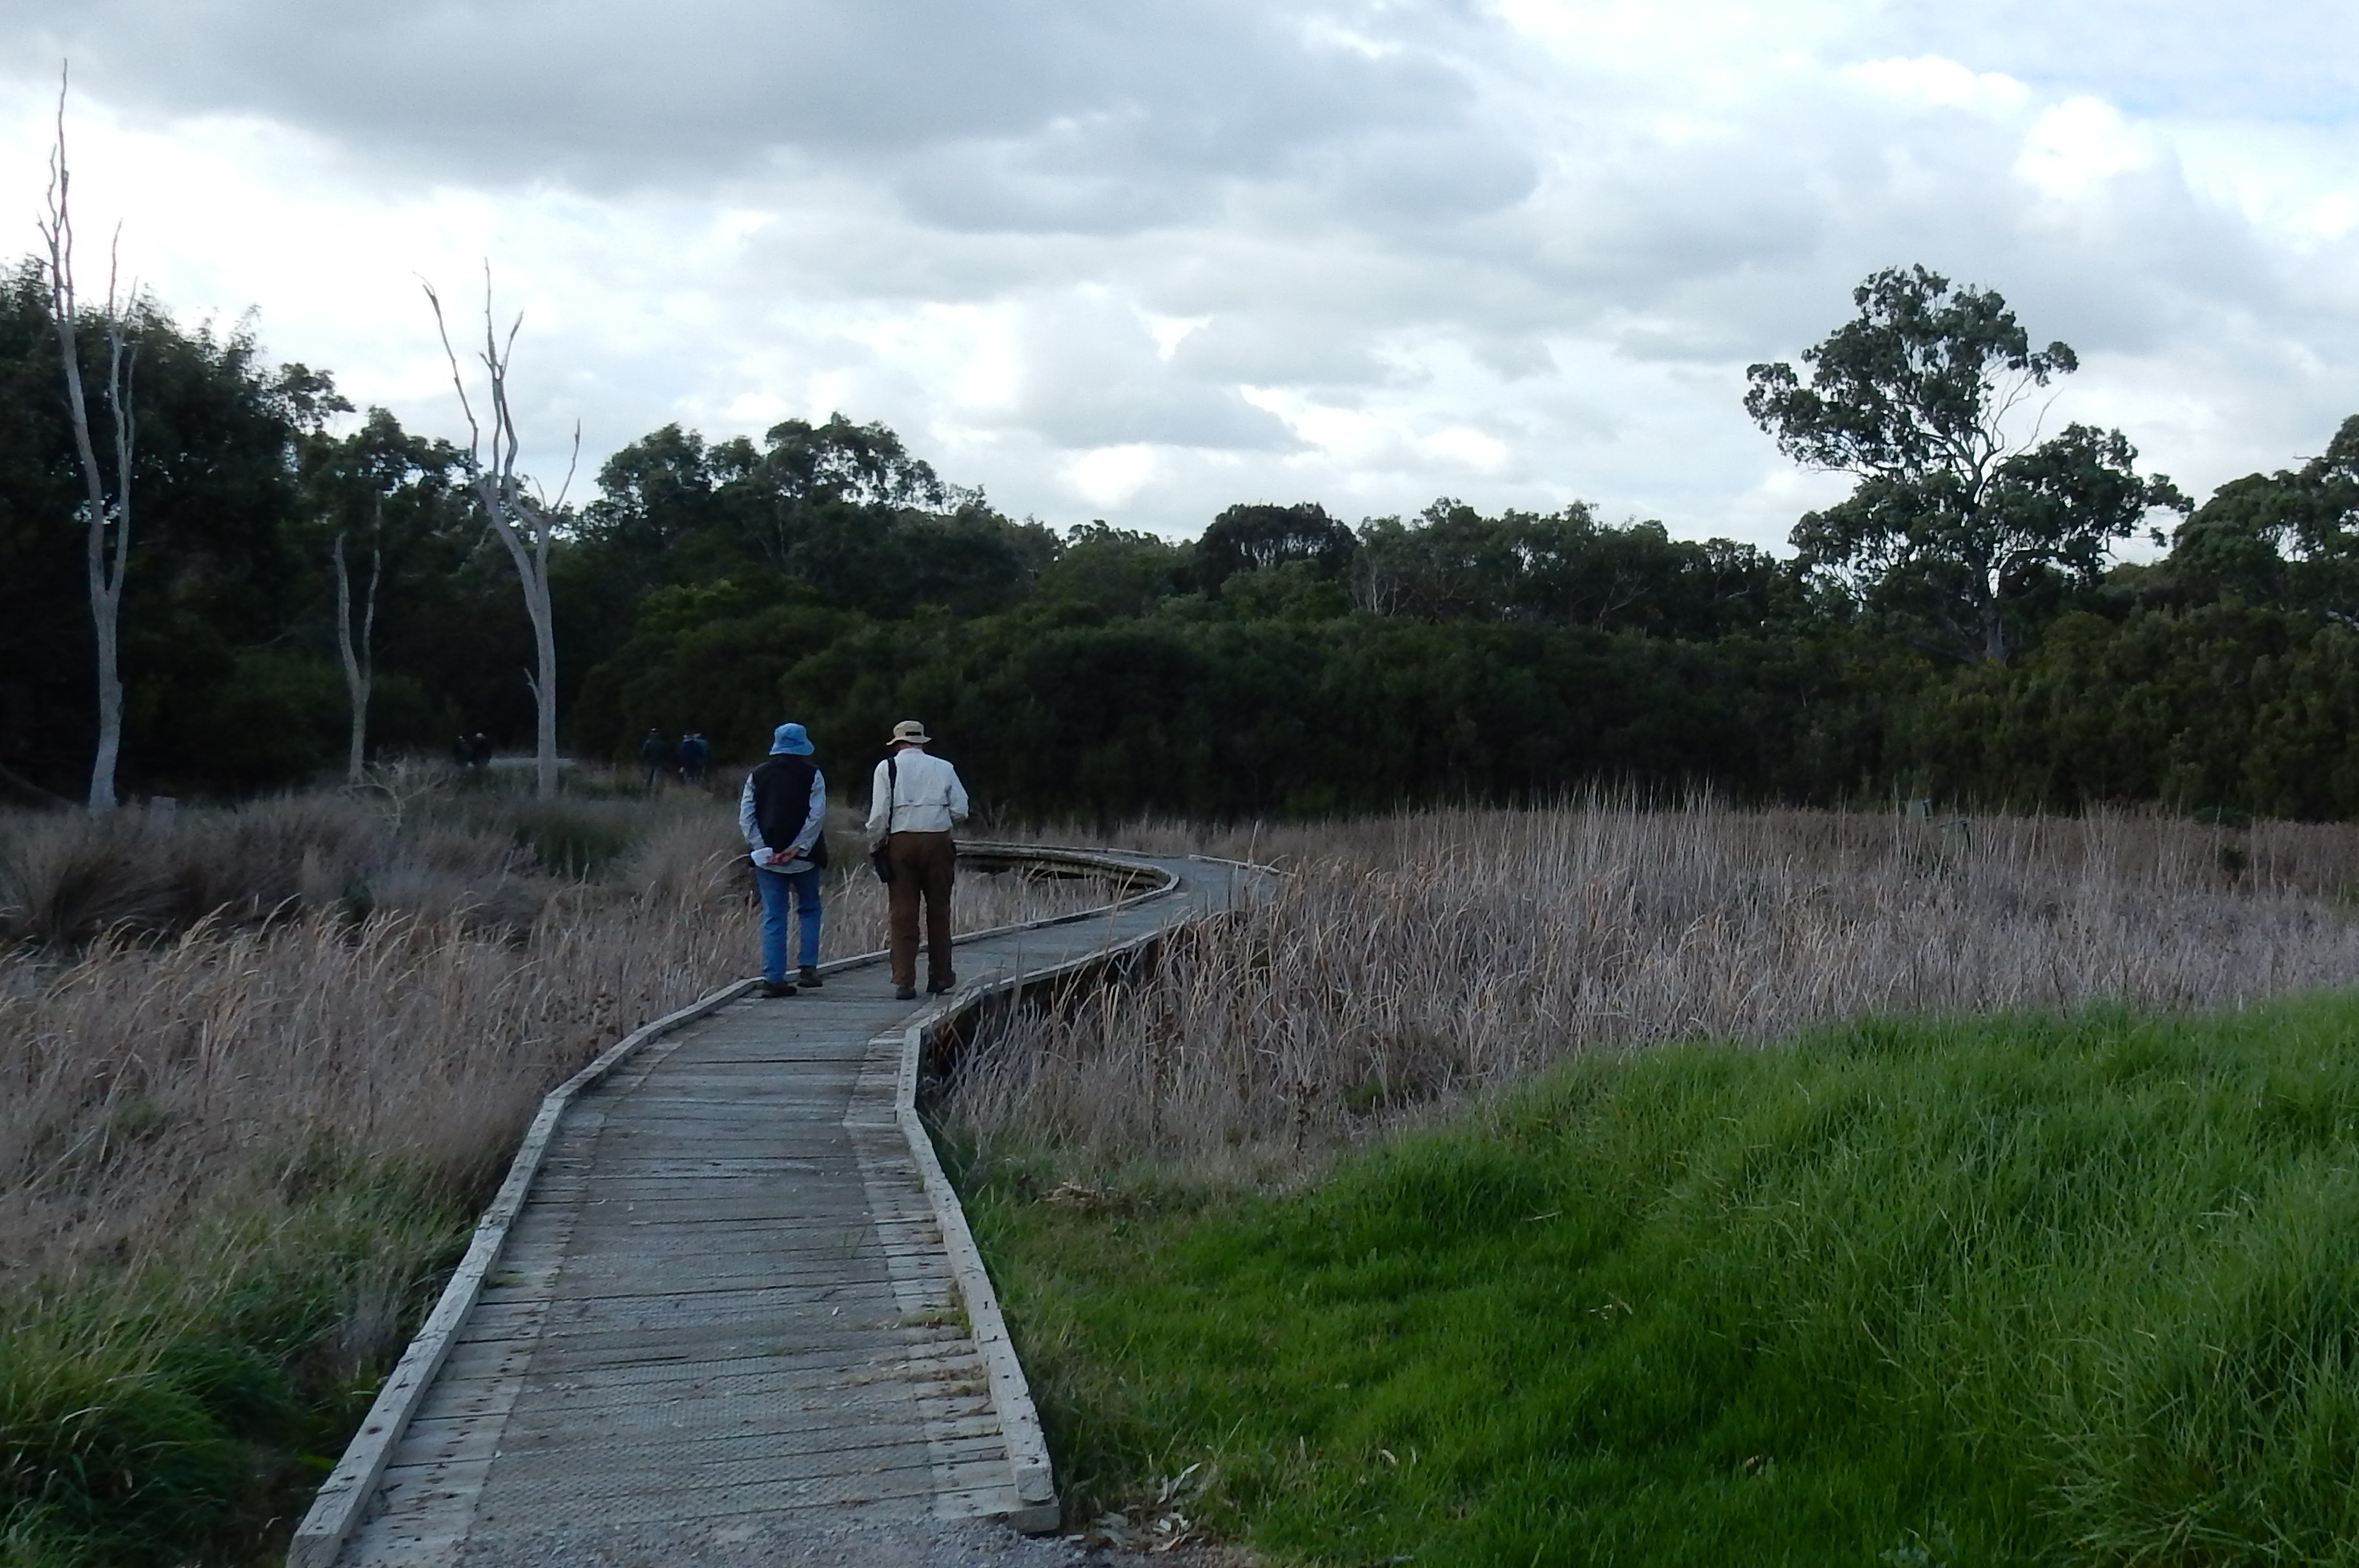 Crossing wetland by boardwalk - D Tweeddale